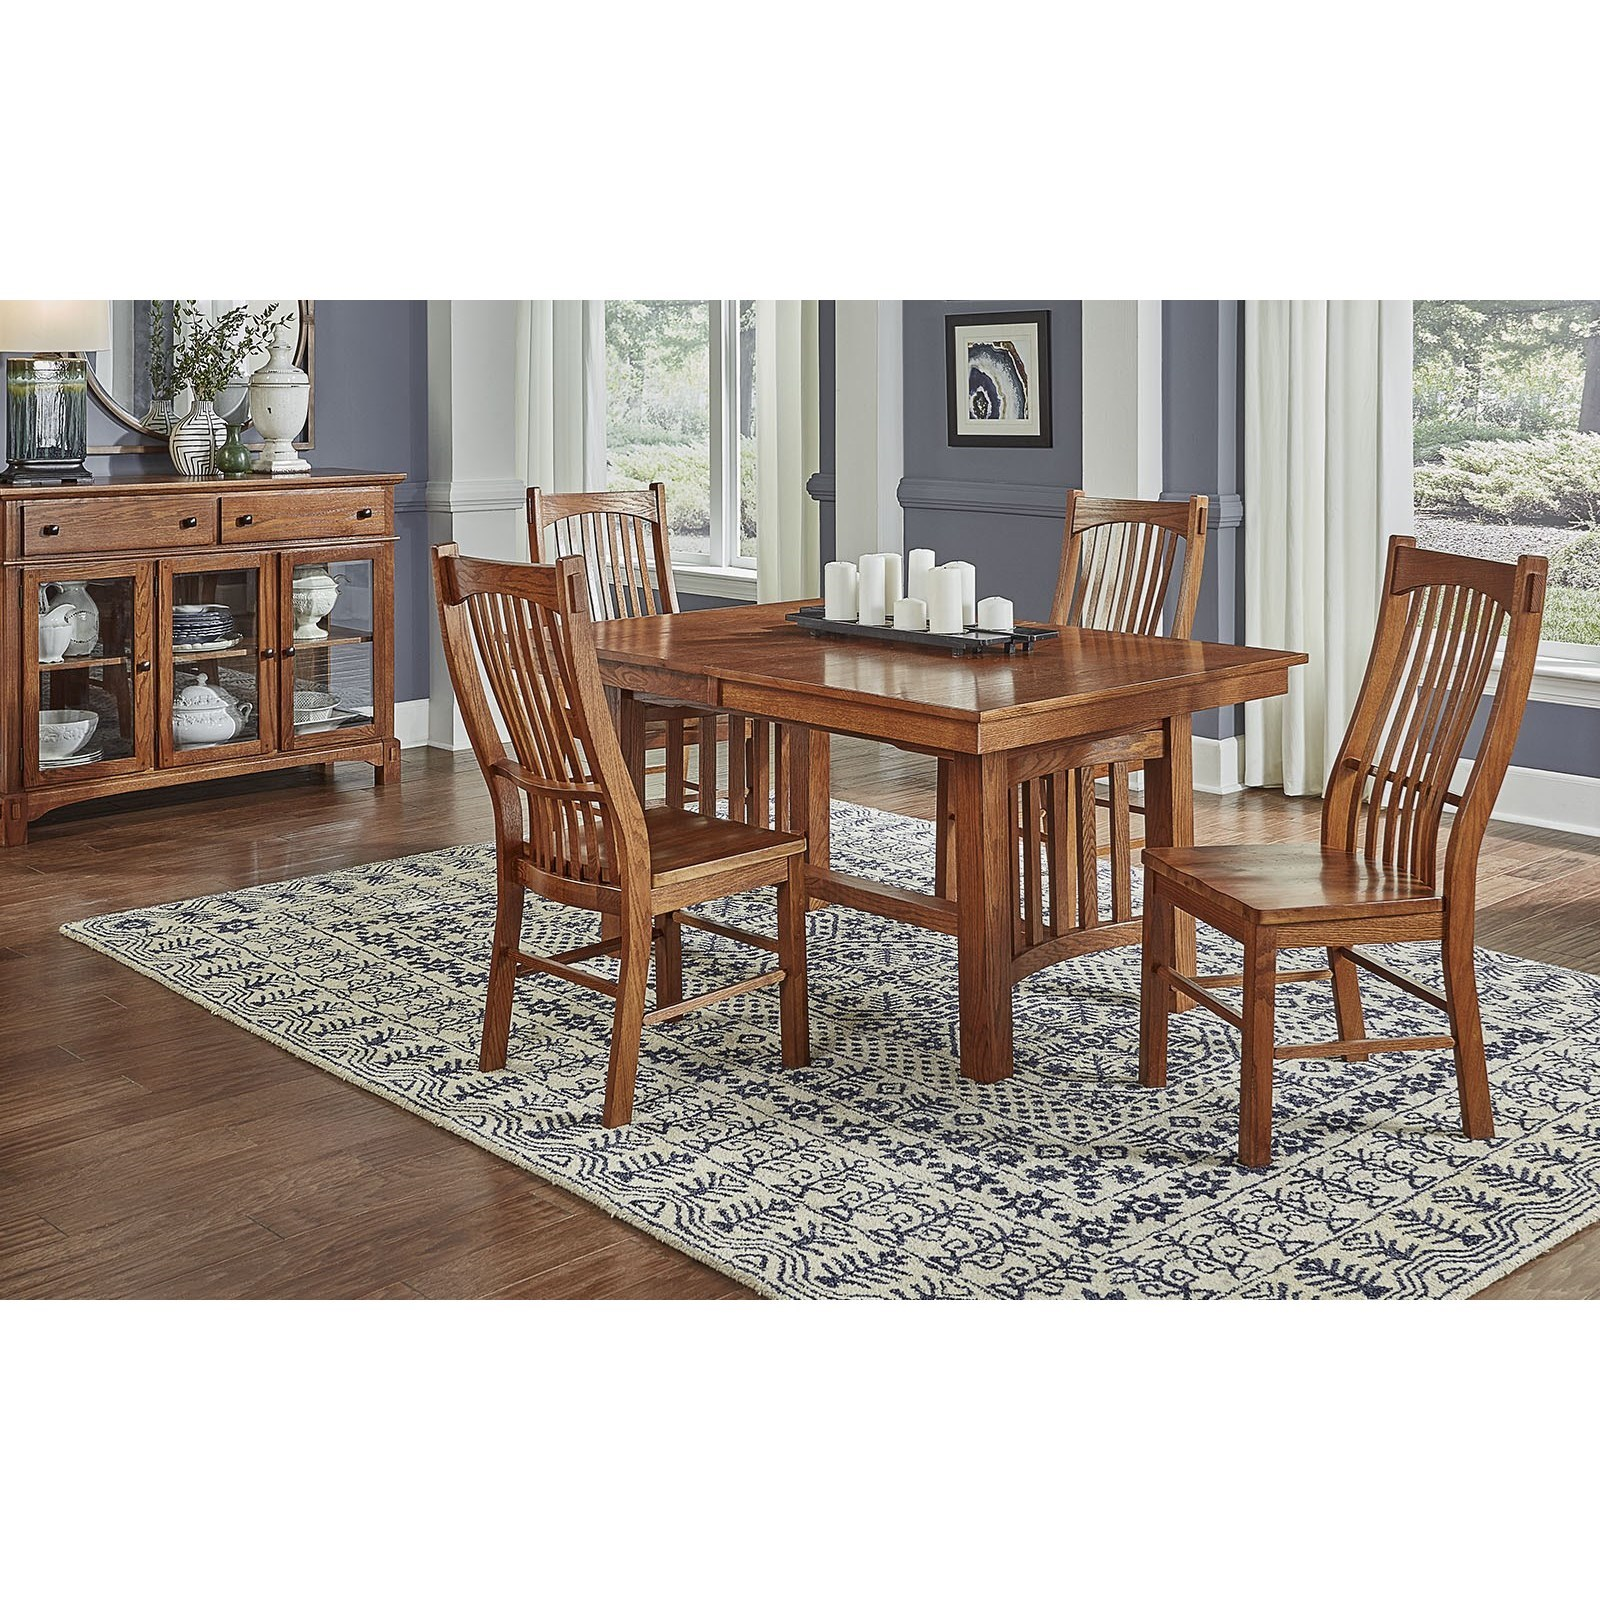 Laurelhurst 5-Piece Dining Table & Chair Set by AAmerica at Dinette Depot